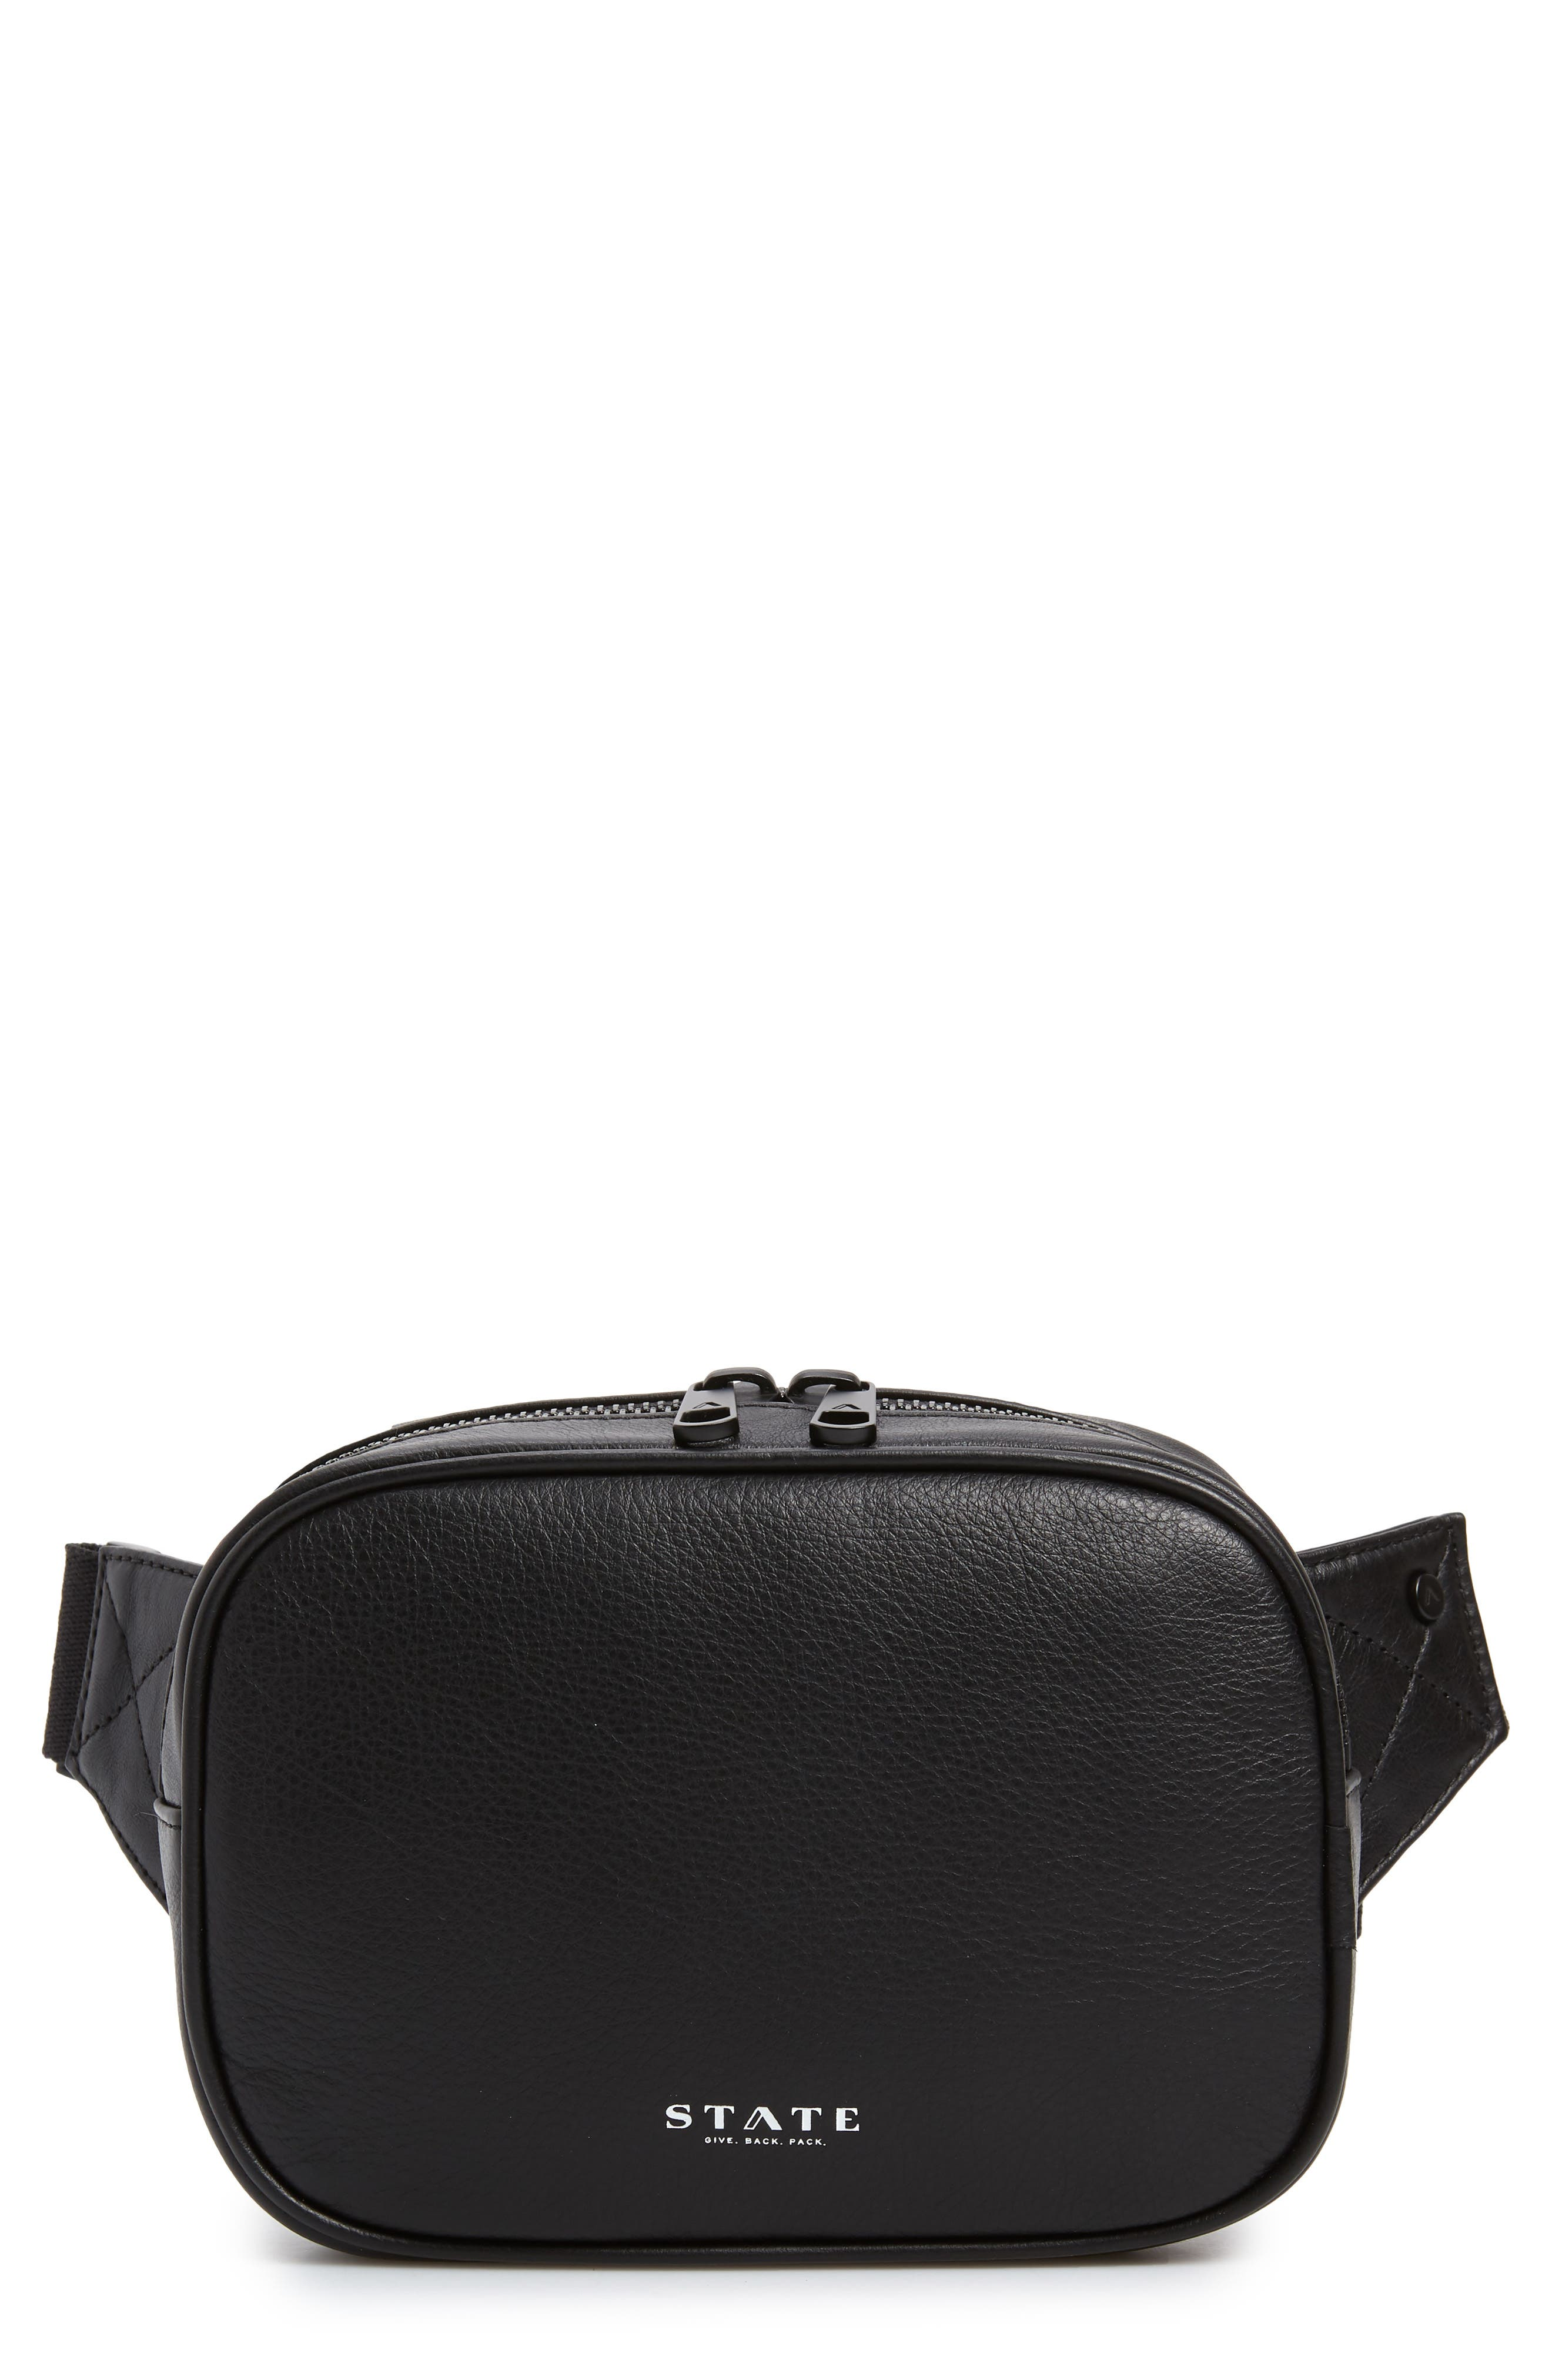 Homecrest Crosby Leather Belt Bag,                             Main thumbnail 1, color,                             BLACK